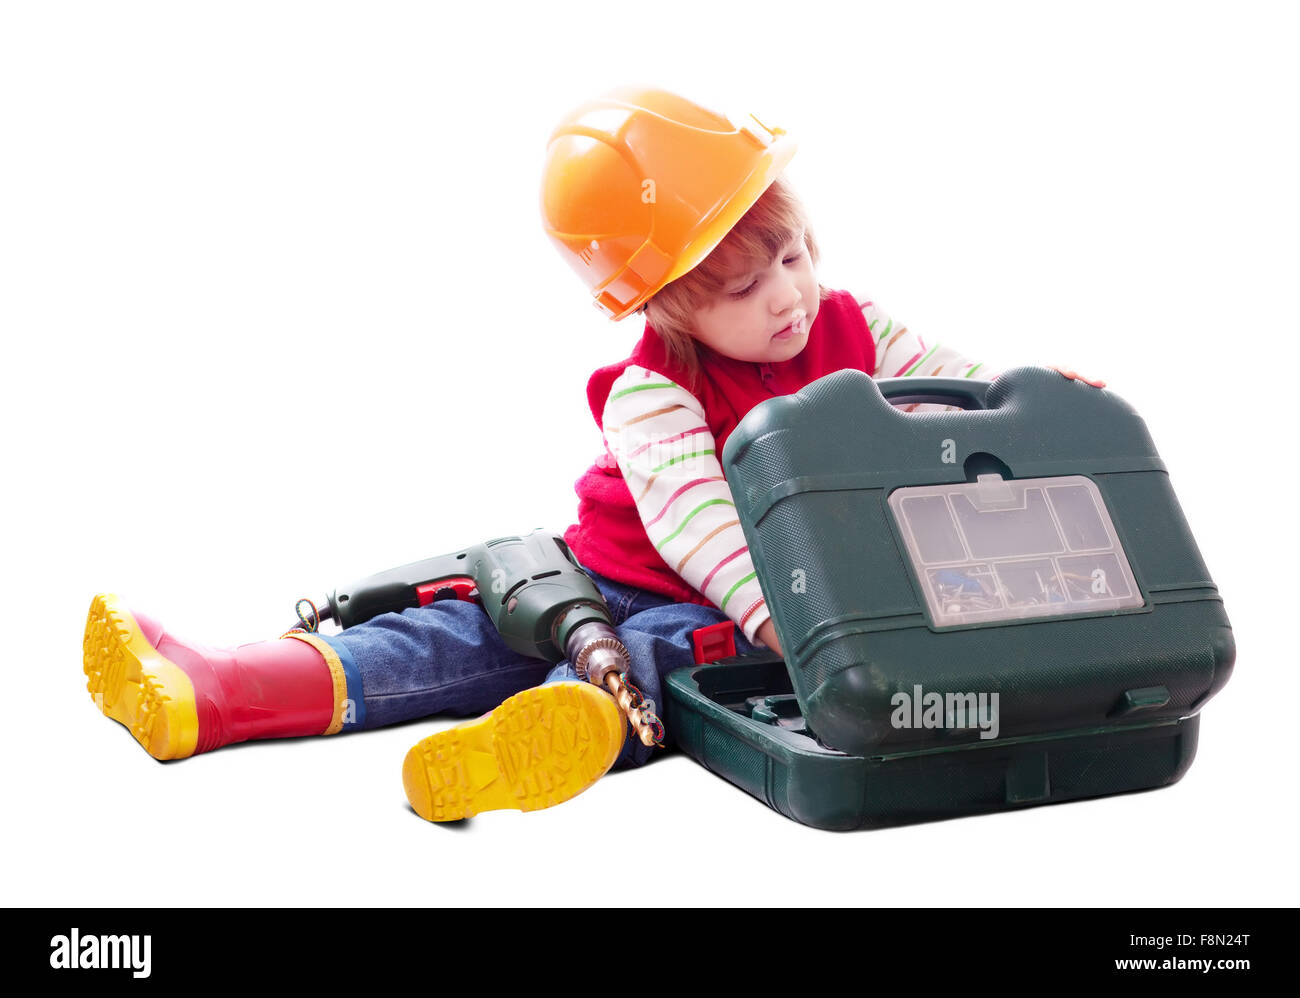 2 years child in hardhat chooses tools in toolbox. Isolated over white background  with shade - Stock Image